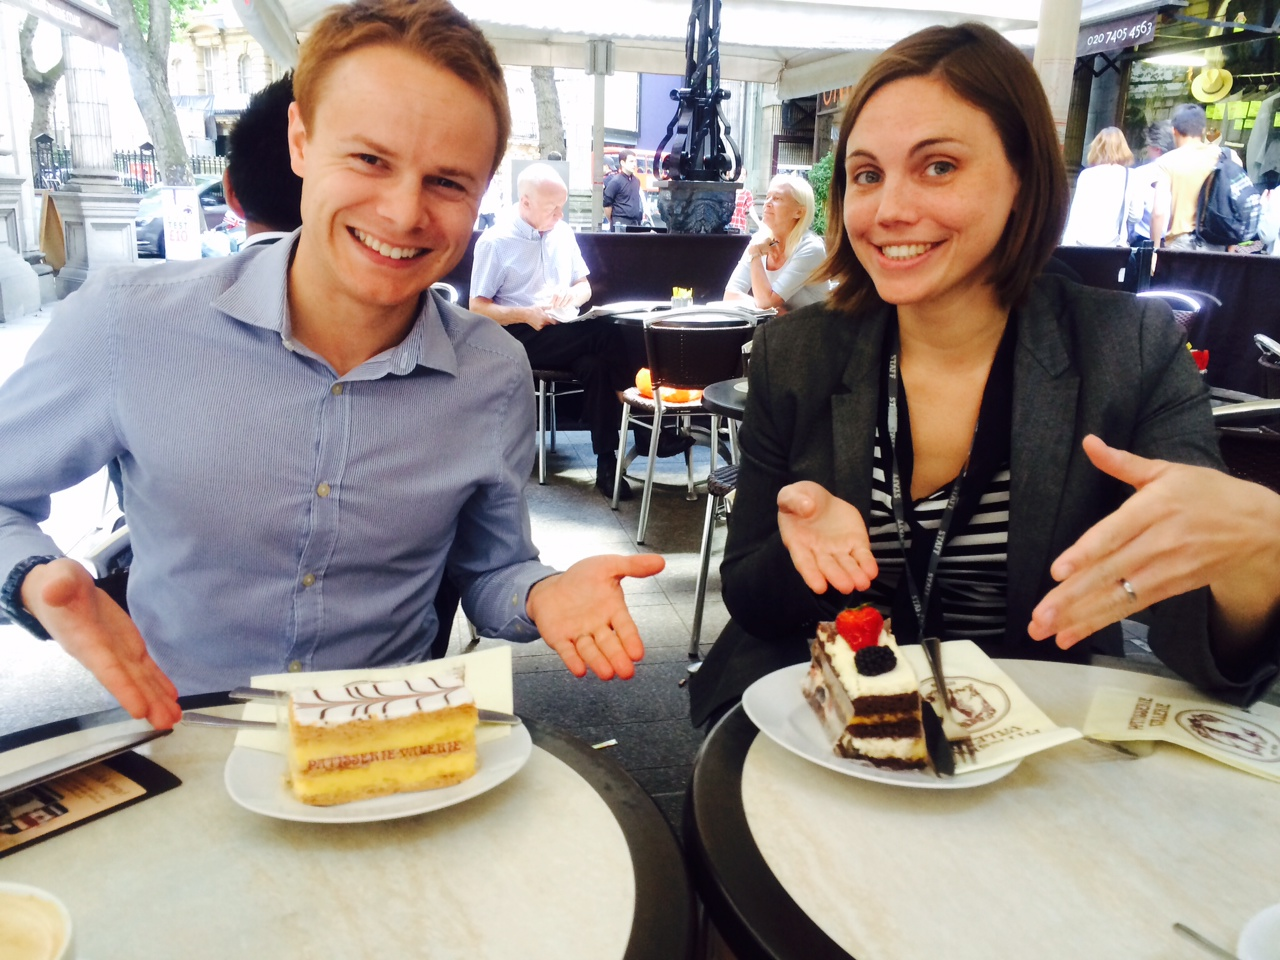 Tom and Rachel, from Monitor, with cake to celebrate their launch on GOV.UK